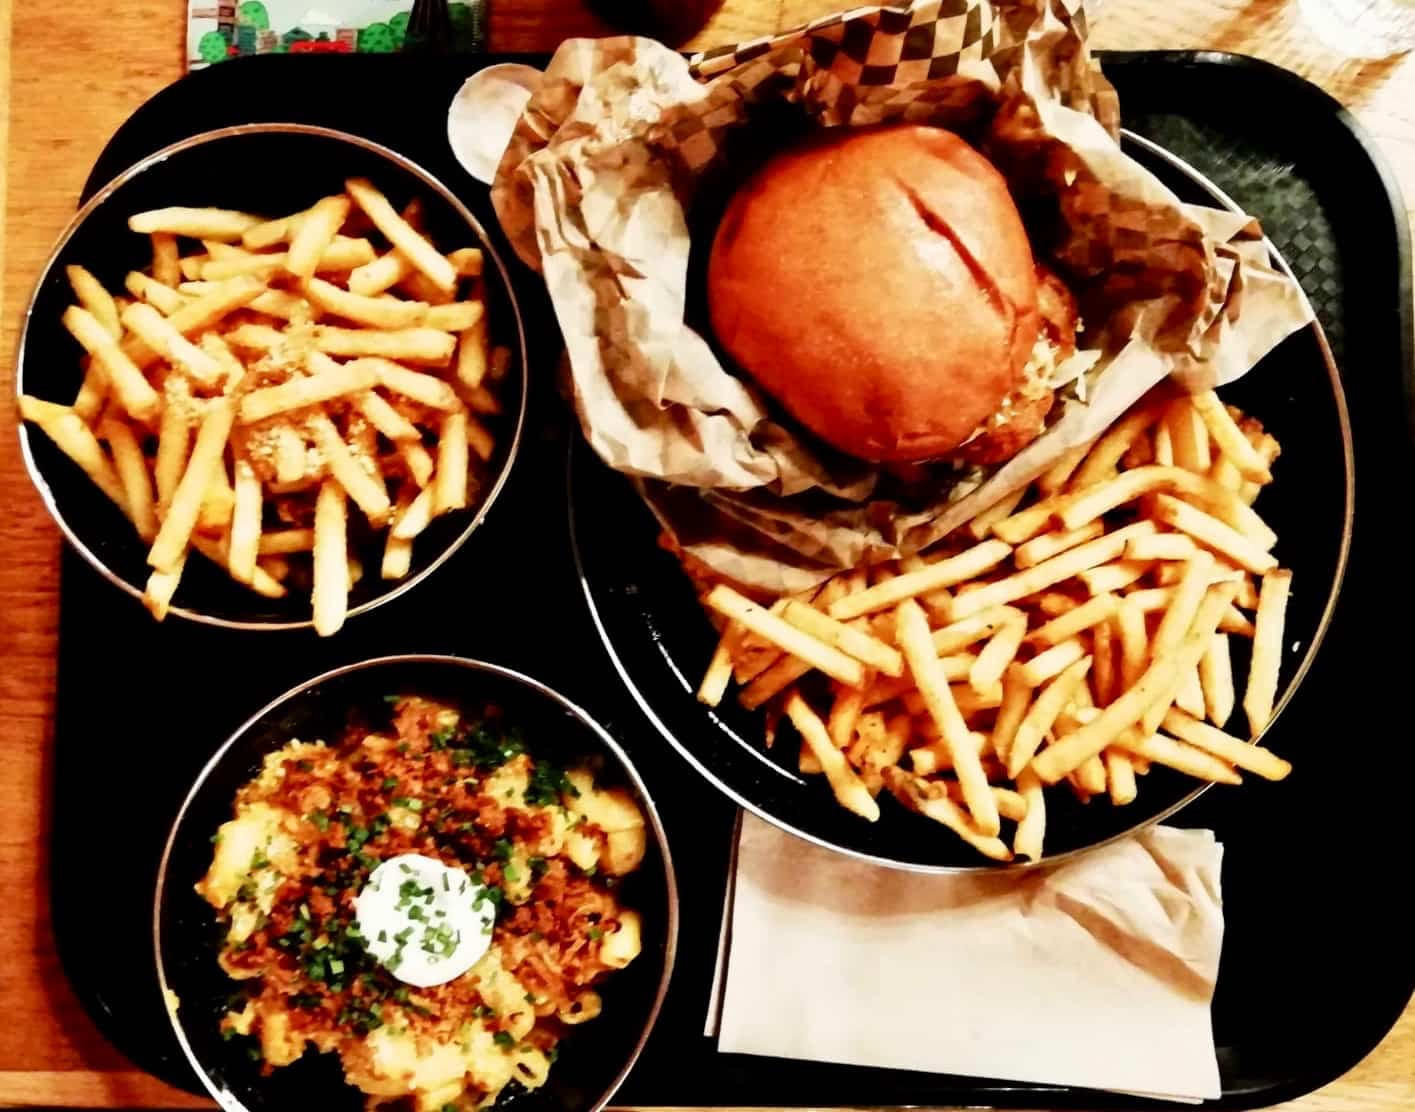 Burger, fries and mac and cheese from Rudy's Dirty Vegan Diner London